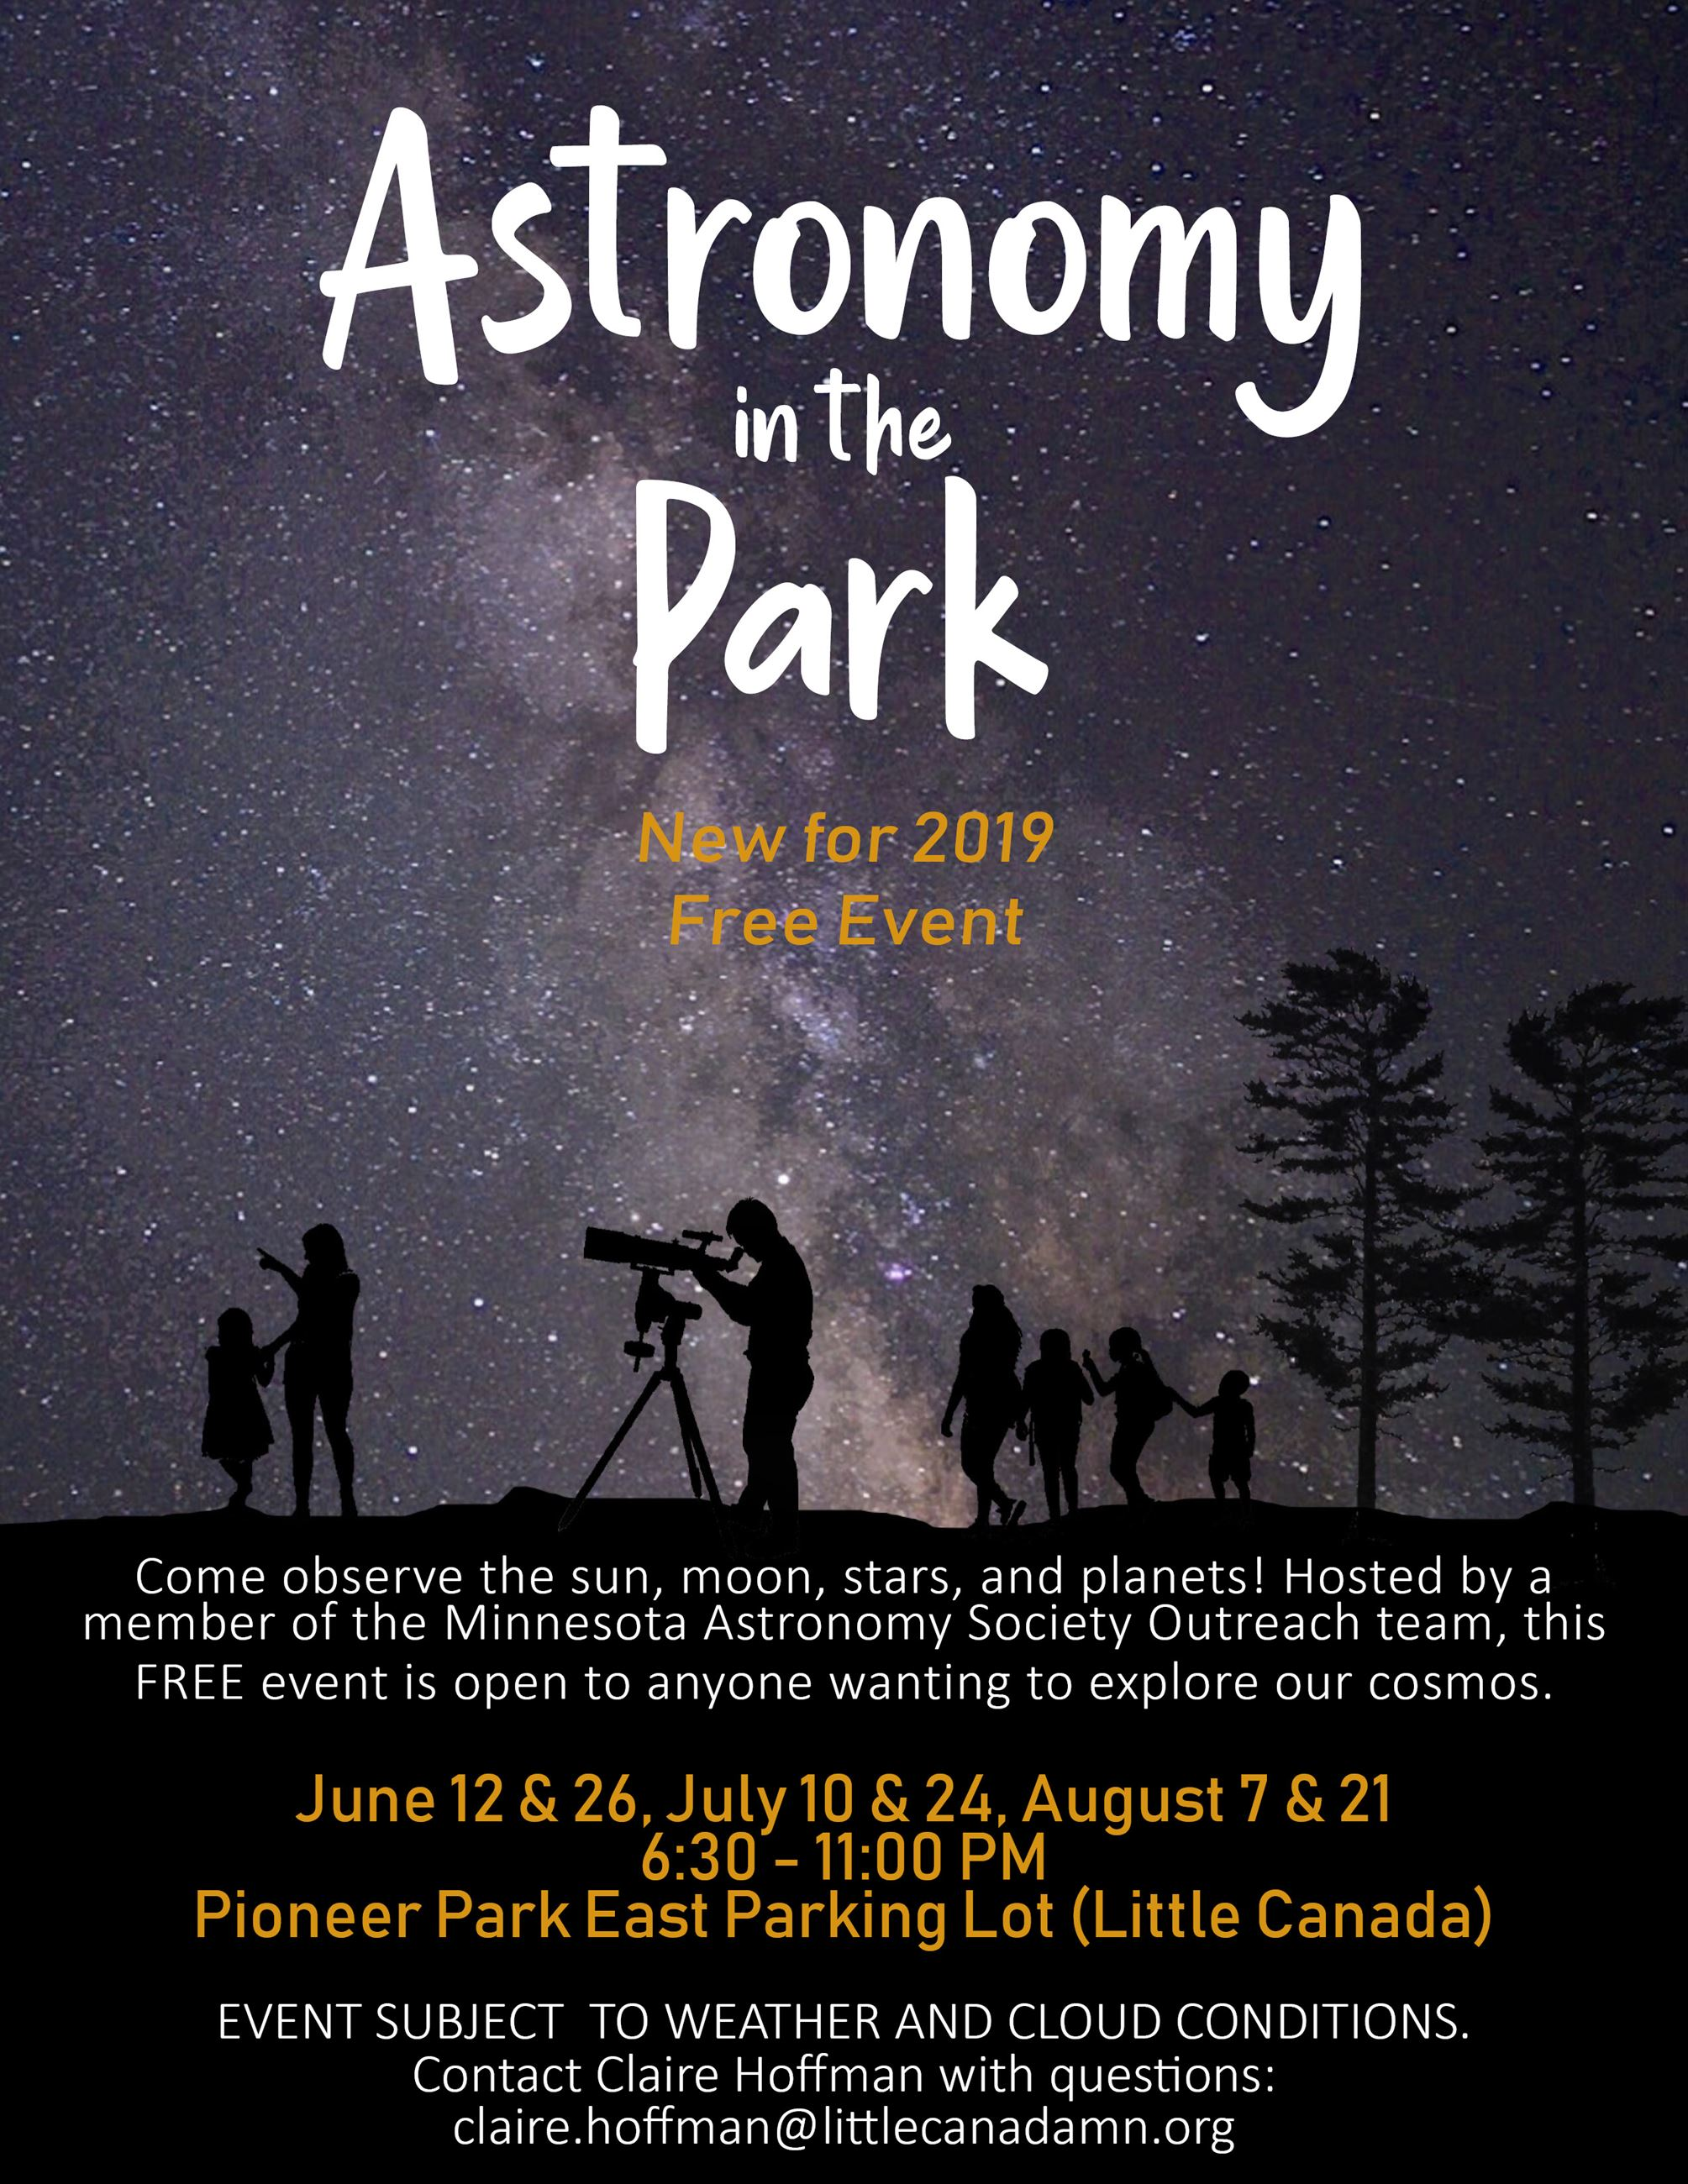 Astonomy in the Park Flyer